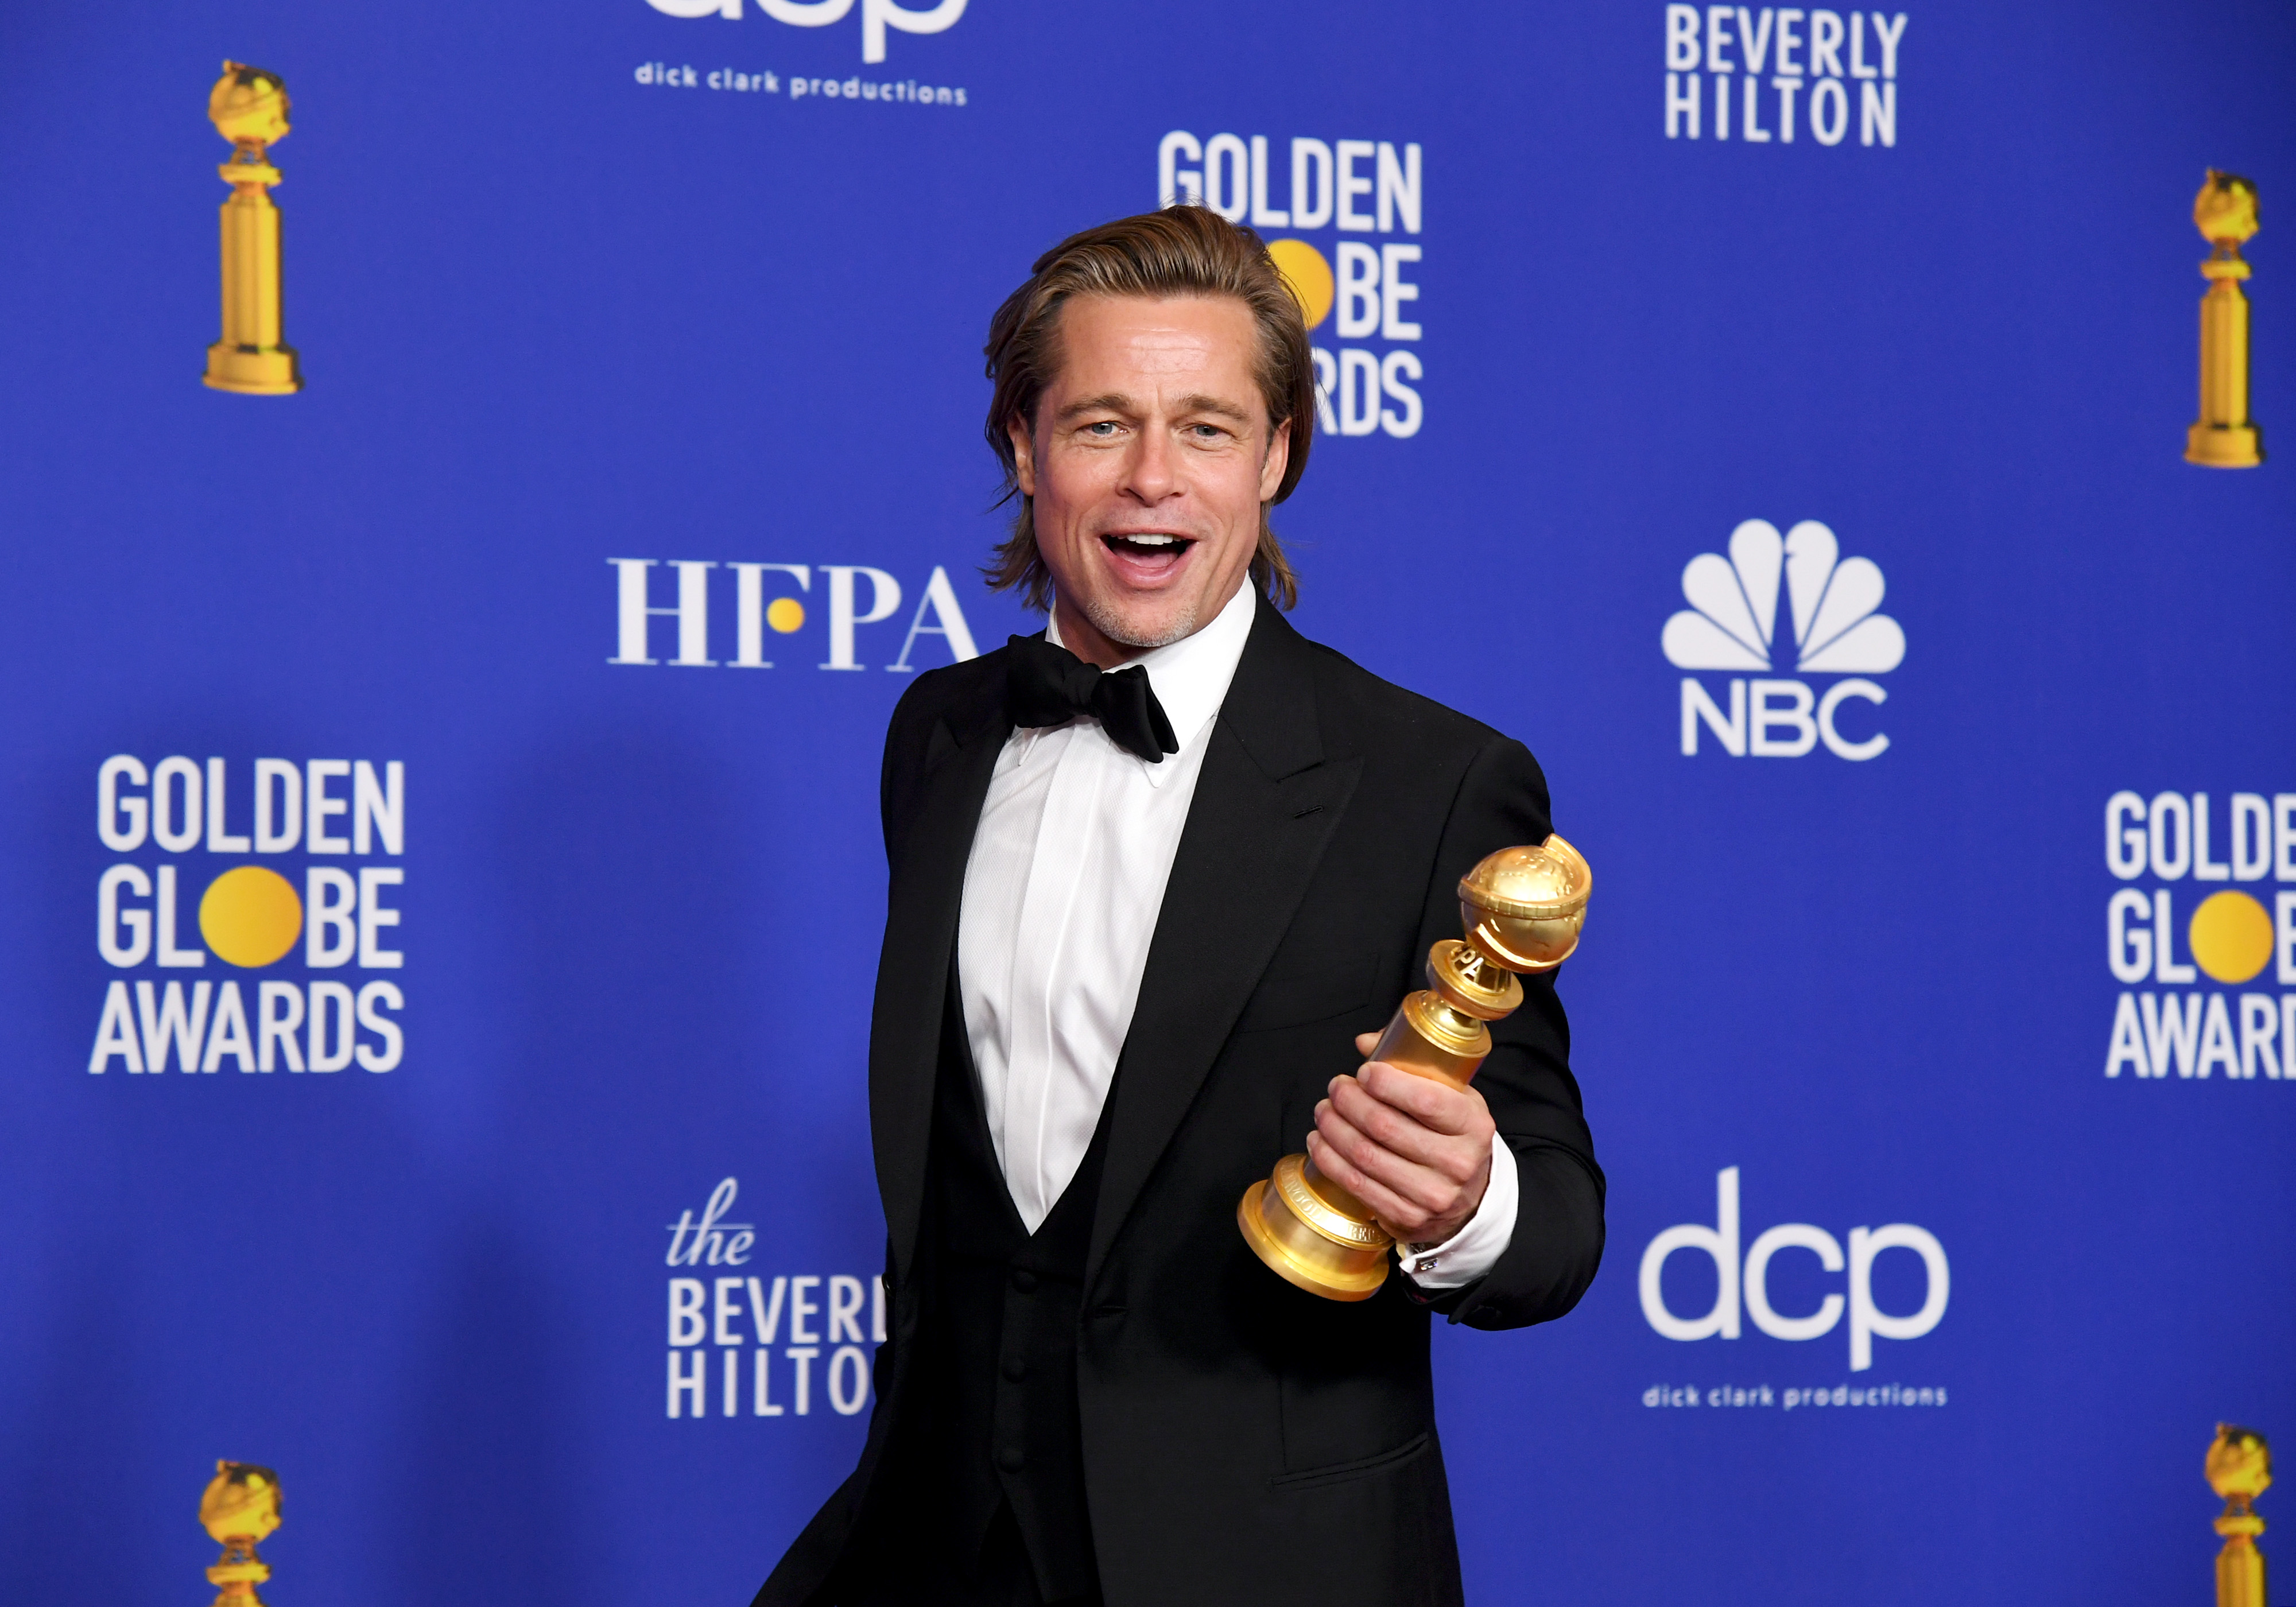 Brad Pitt, winner of Best Performance by a Supporting Actor in a Motion Picture, poses in the press room during the 77th Annual Golden Globe Awards at The Beverly Hilton Hotel on January 05, 2020 in Beverly Hills, California. (Photo by Kevin Winter/Getty Images)